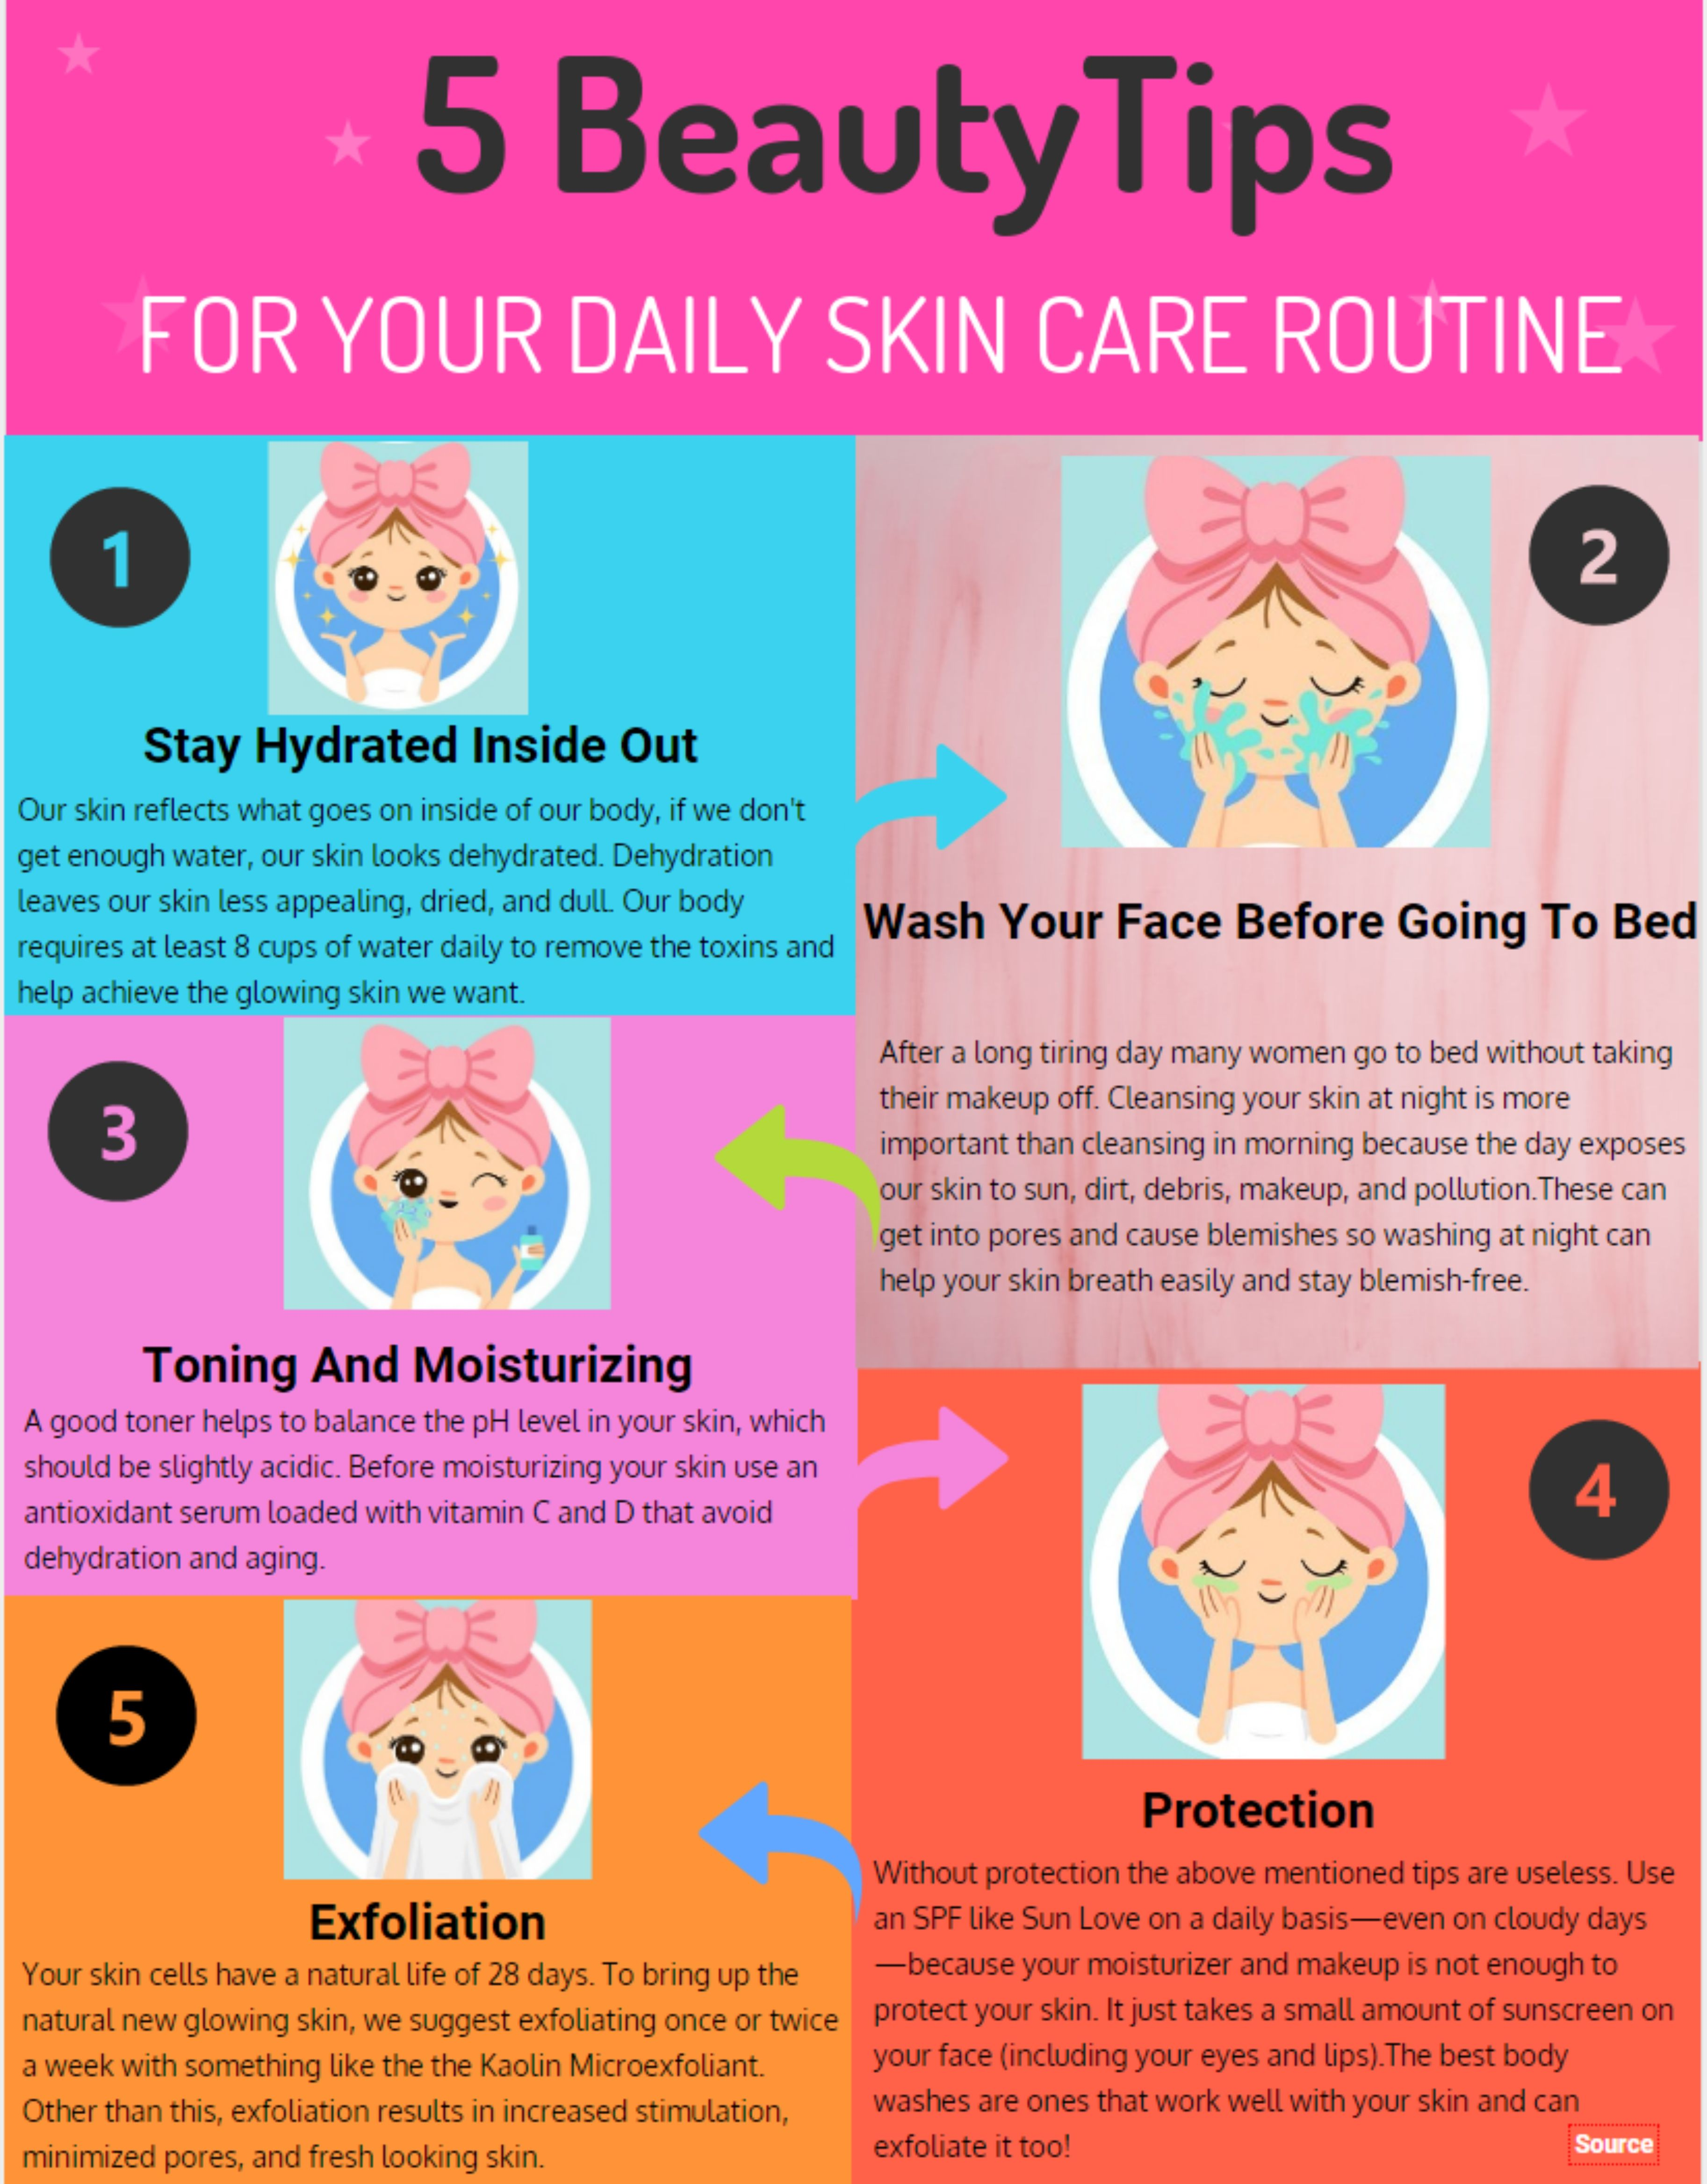 10 Beauty Tips For Your Daily Skin Care Routine.!  Daily skin care